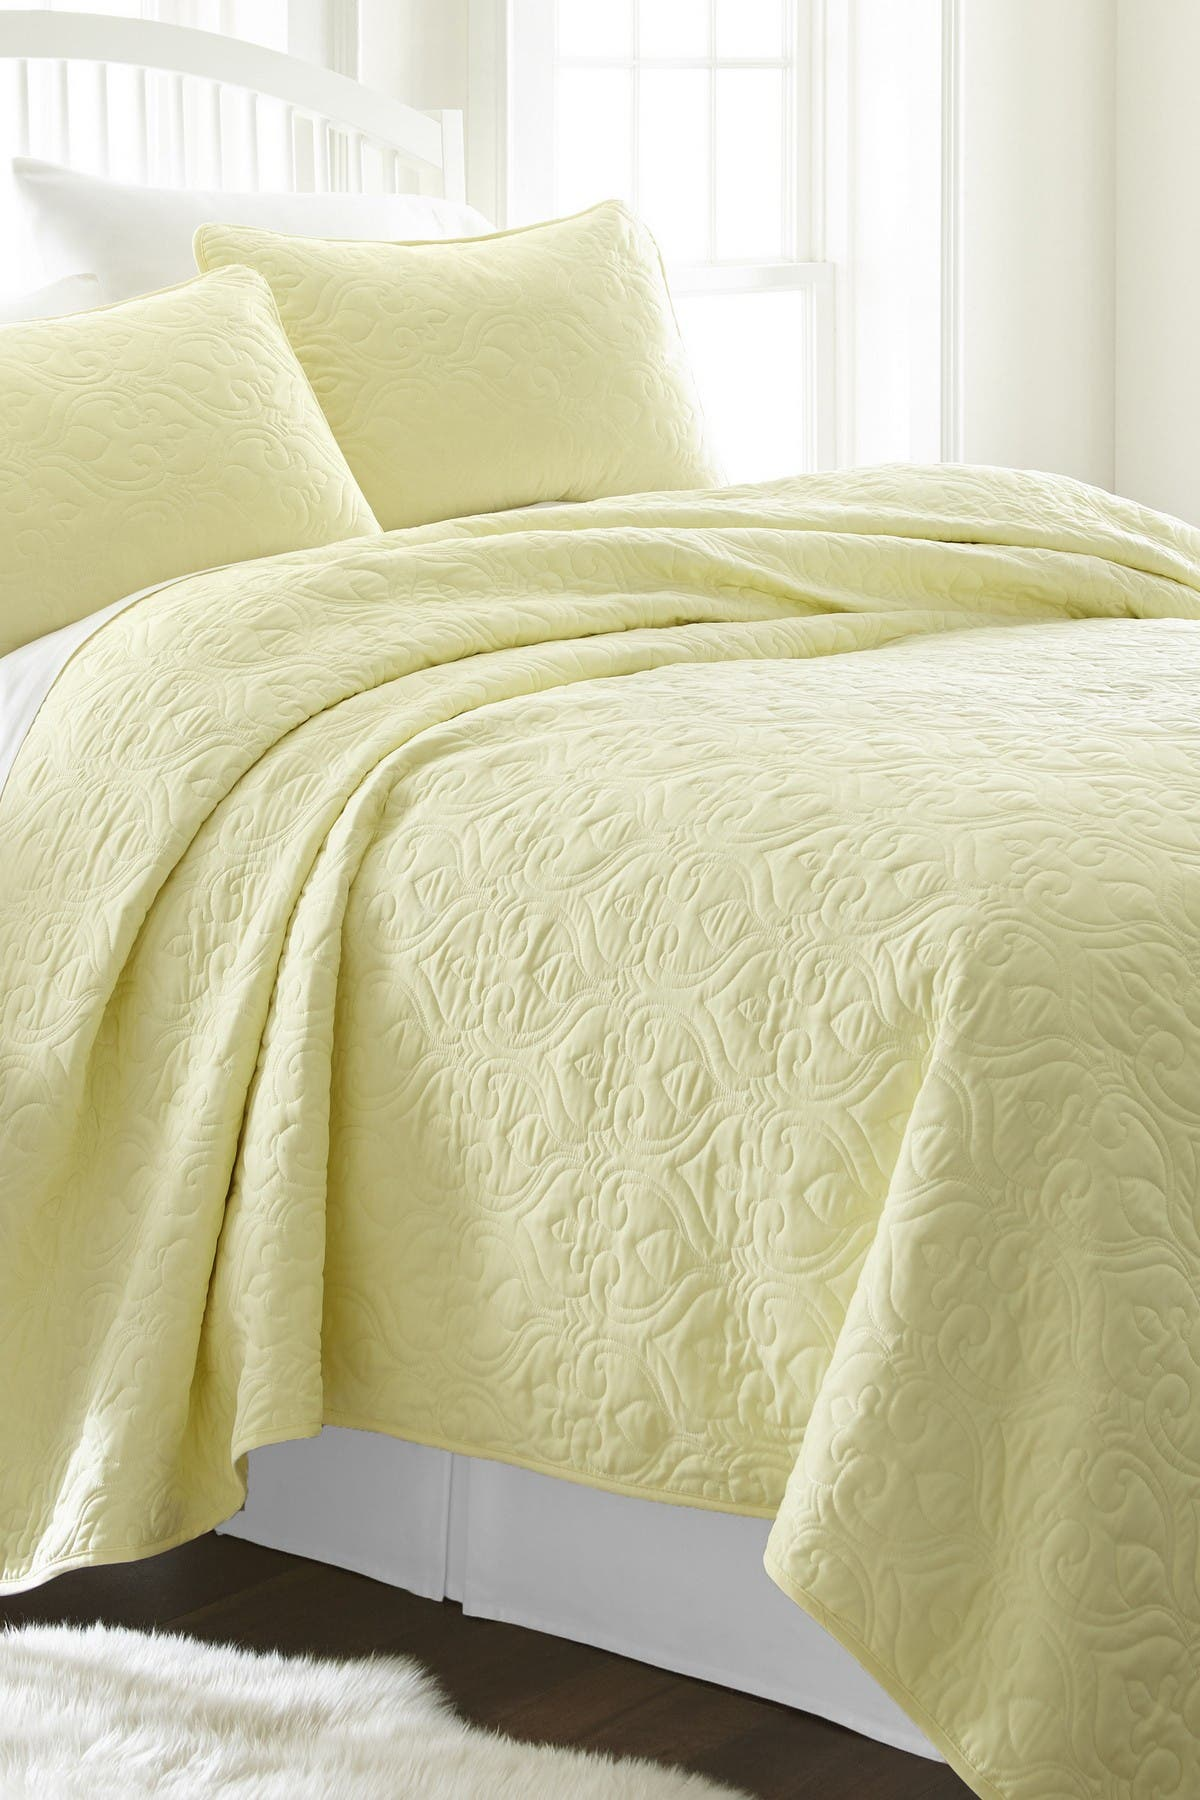 Image of IENJOY HOME Home Spun Premium Ultra Soft Damask Pattern Quilted Twin Coverlet Set - Yellow